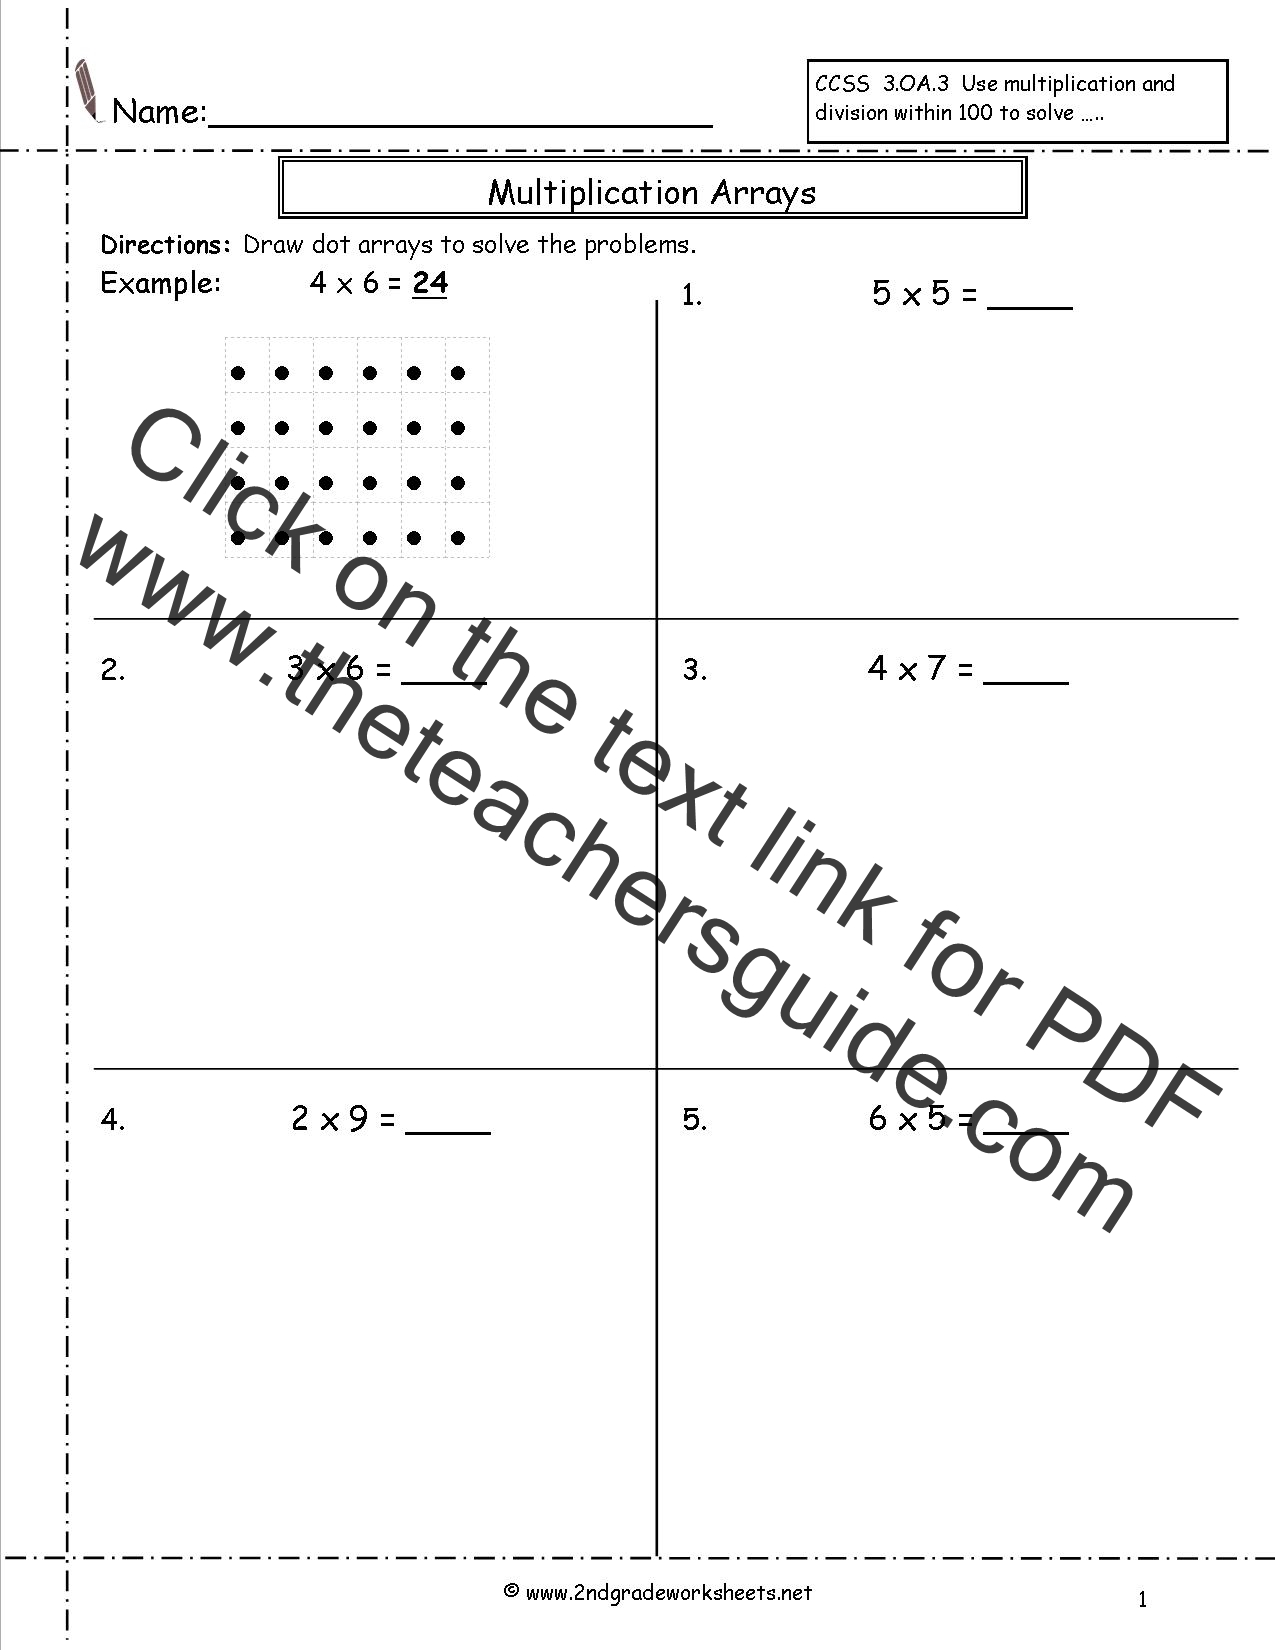 Multiplication Arrays Worksheets – Multiplication Worksheets for 2nd Grade